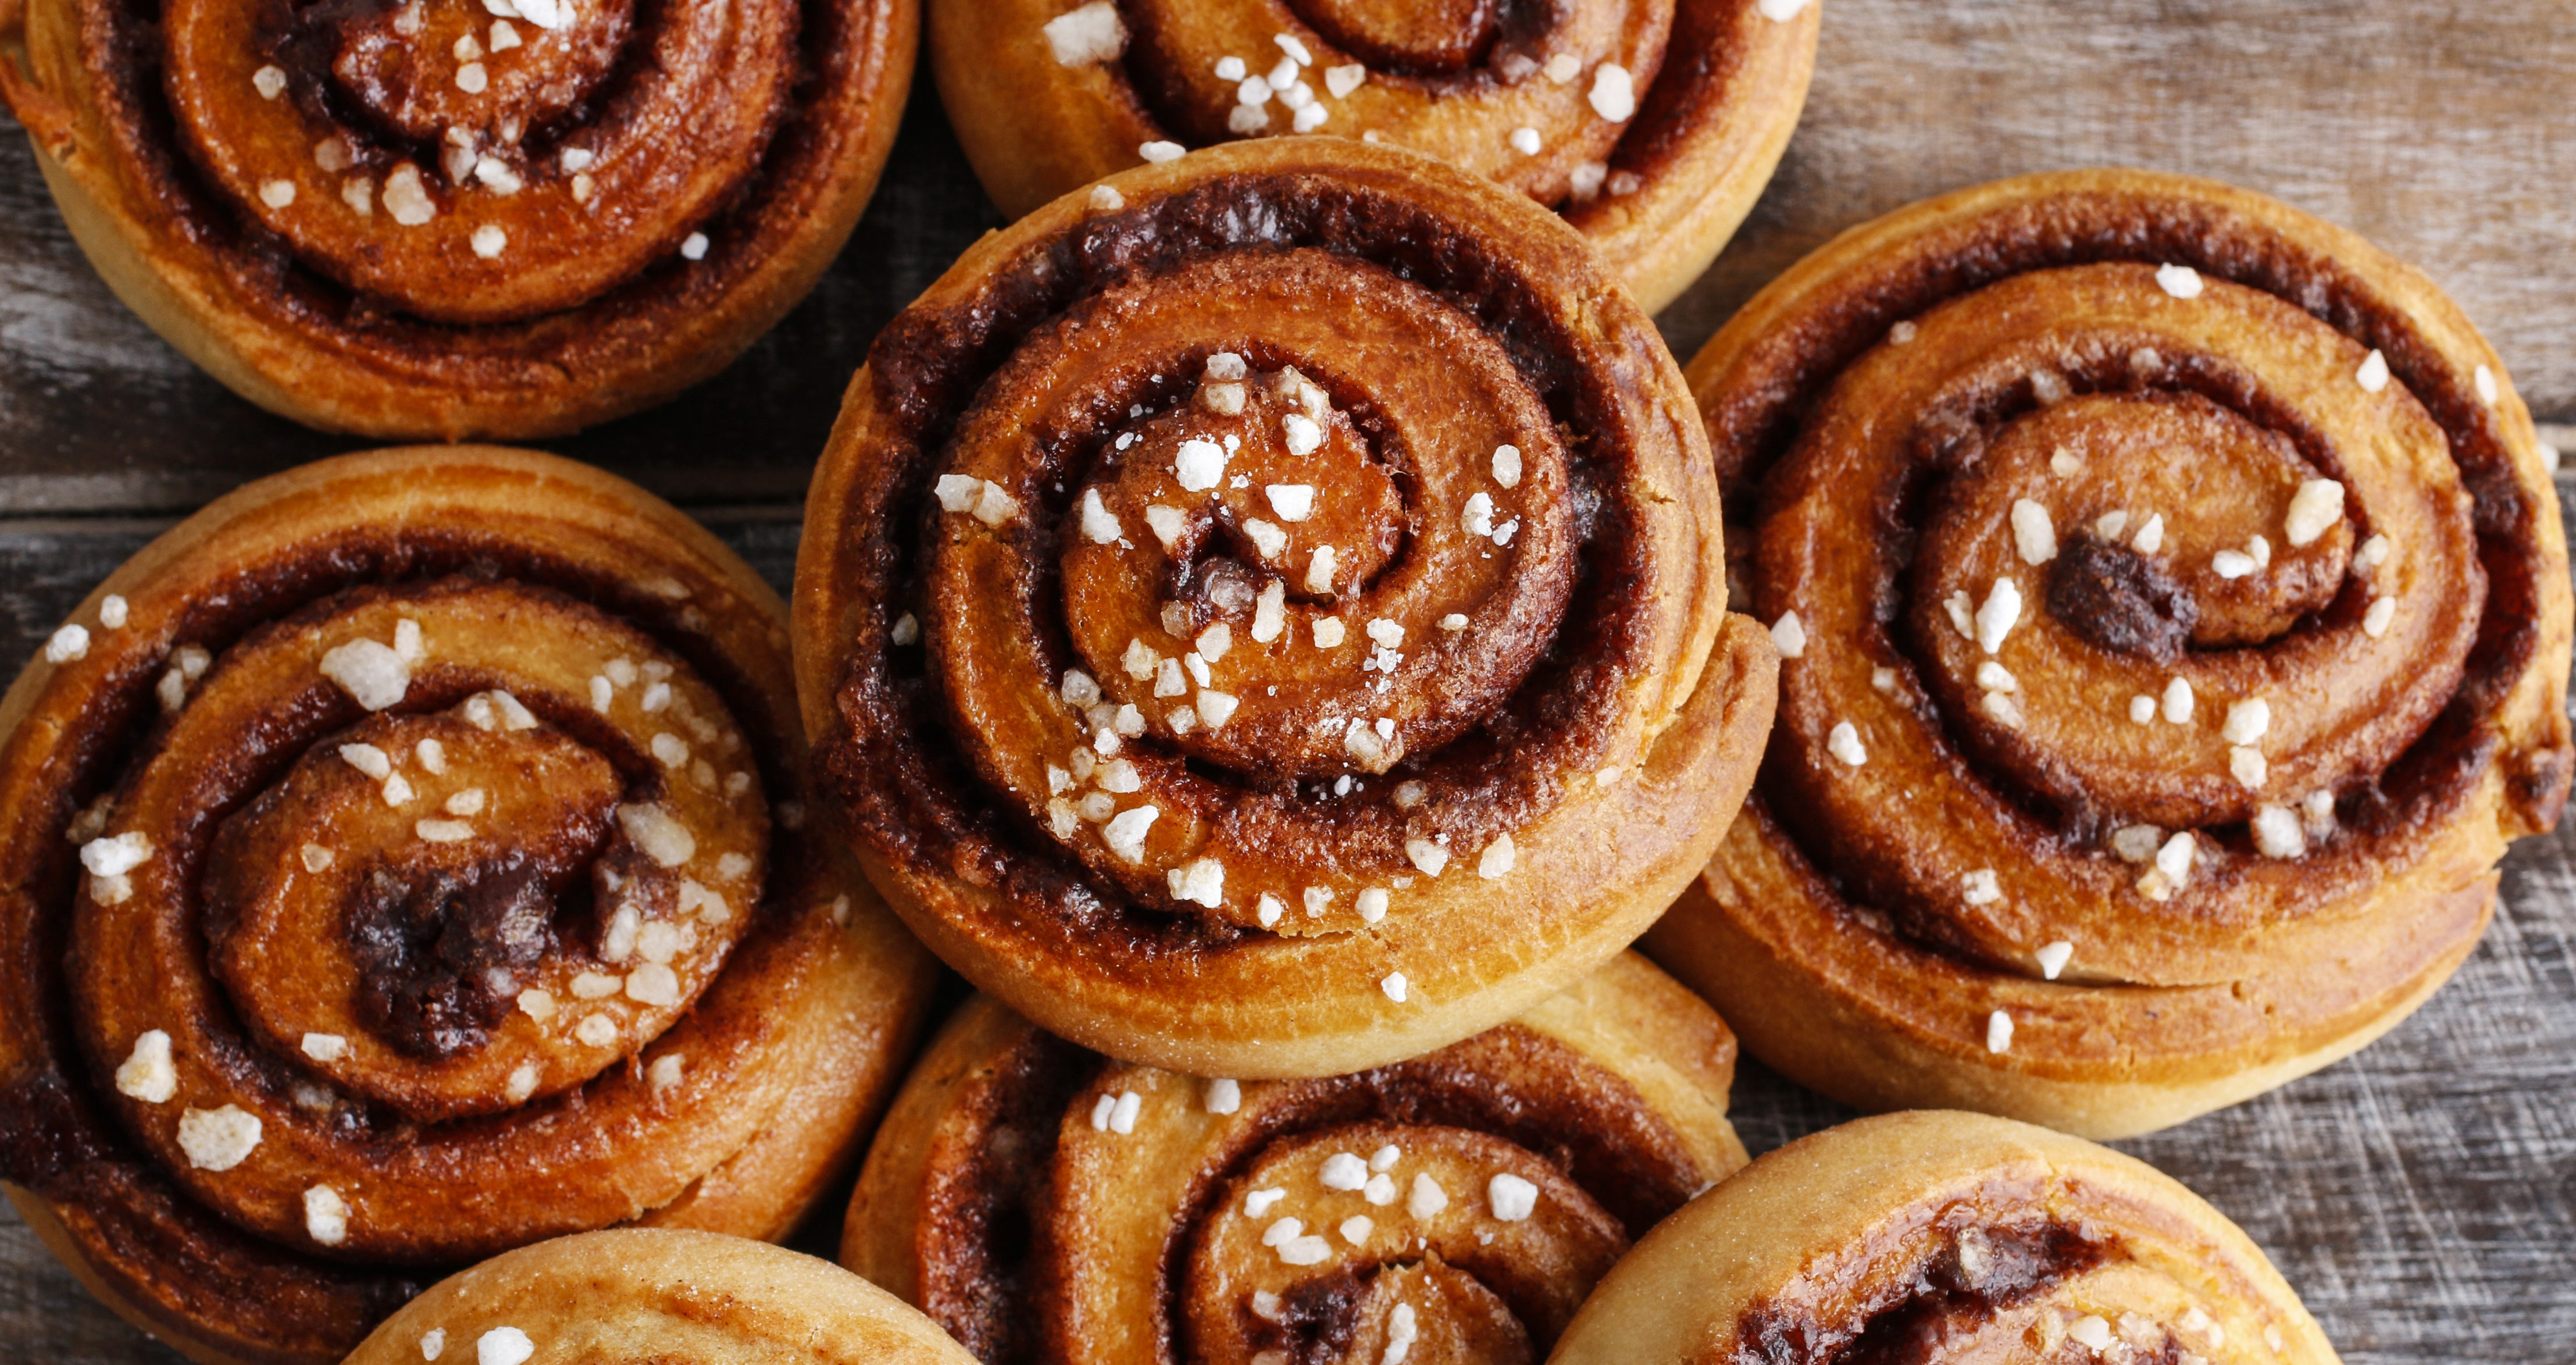 M&S shoppers go wild over cinnamon buns drizzled in caramel sauce